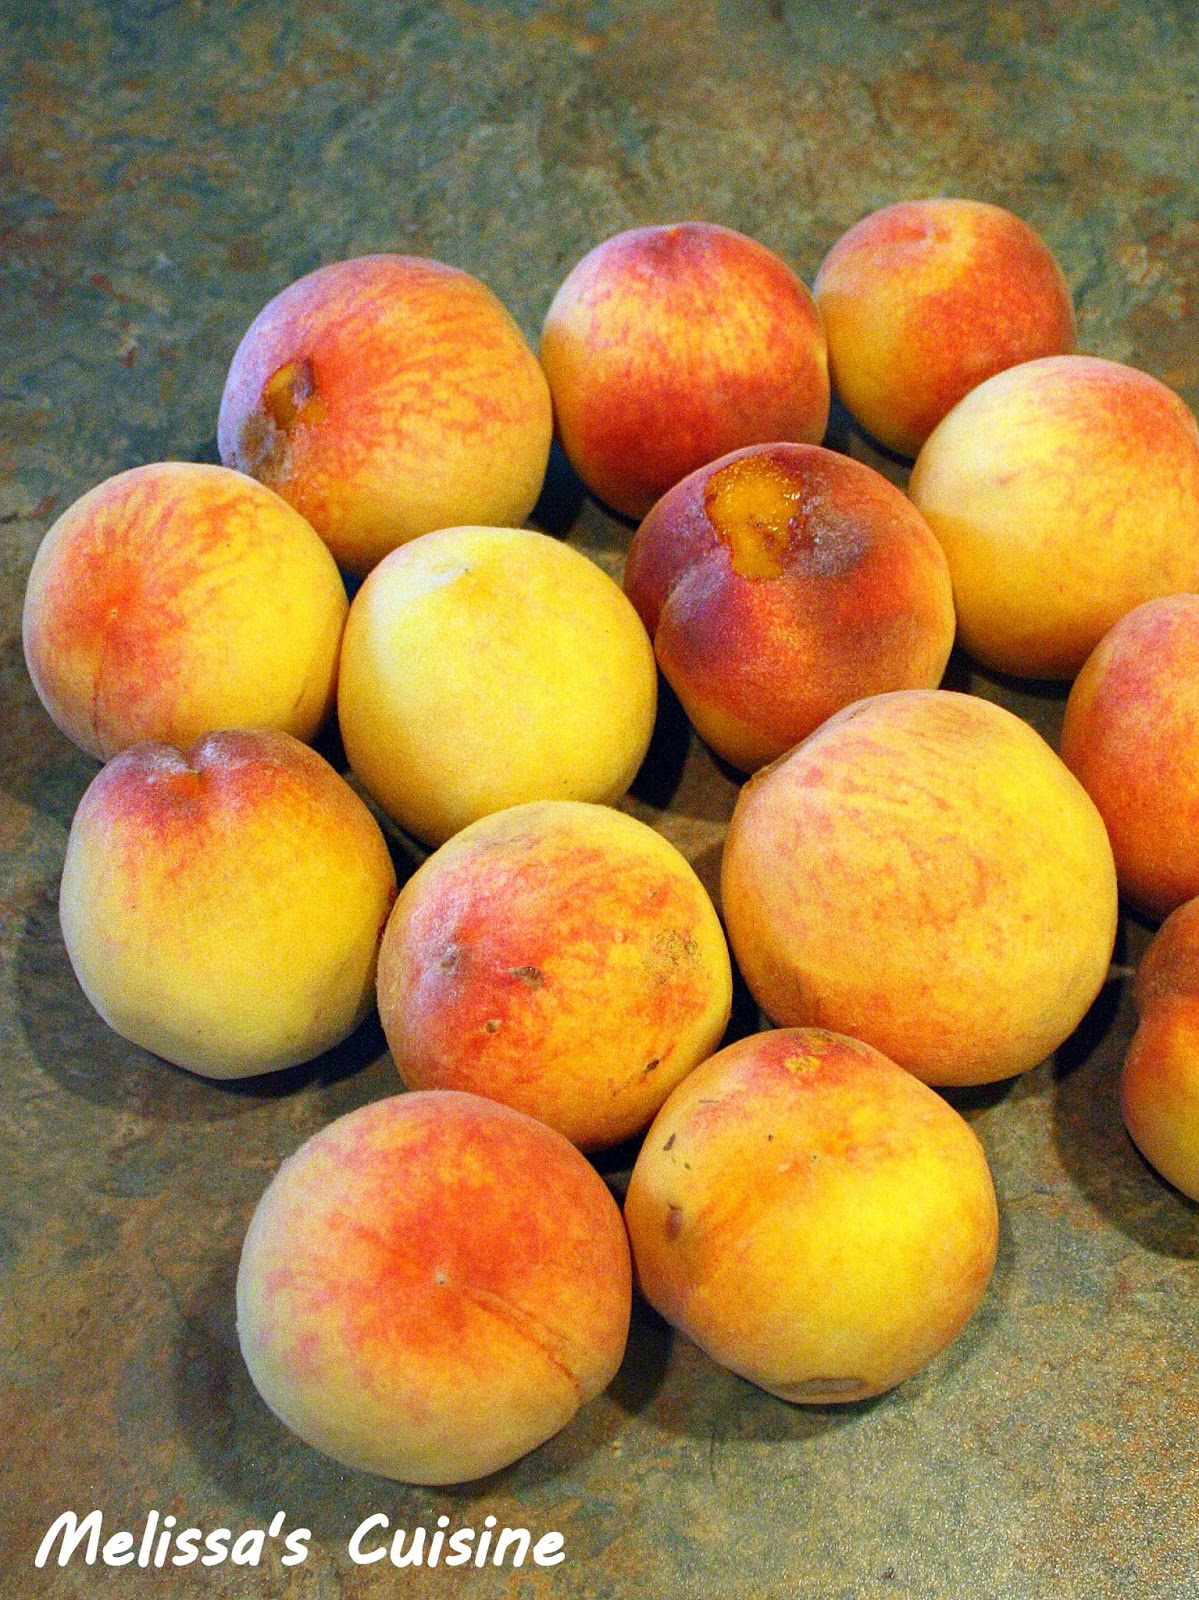 Melissa's Cuisine: Tips and Tricks: How to Peel Peaches Quickly